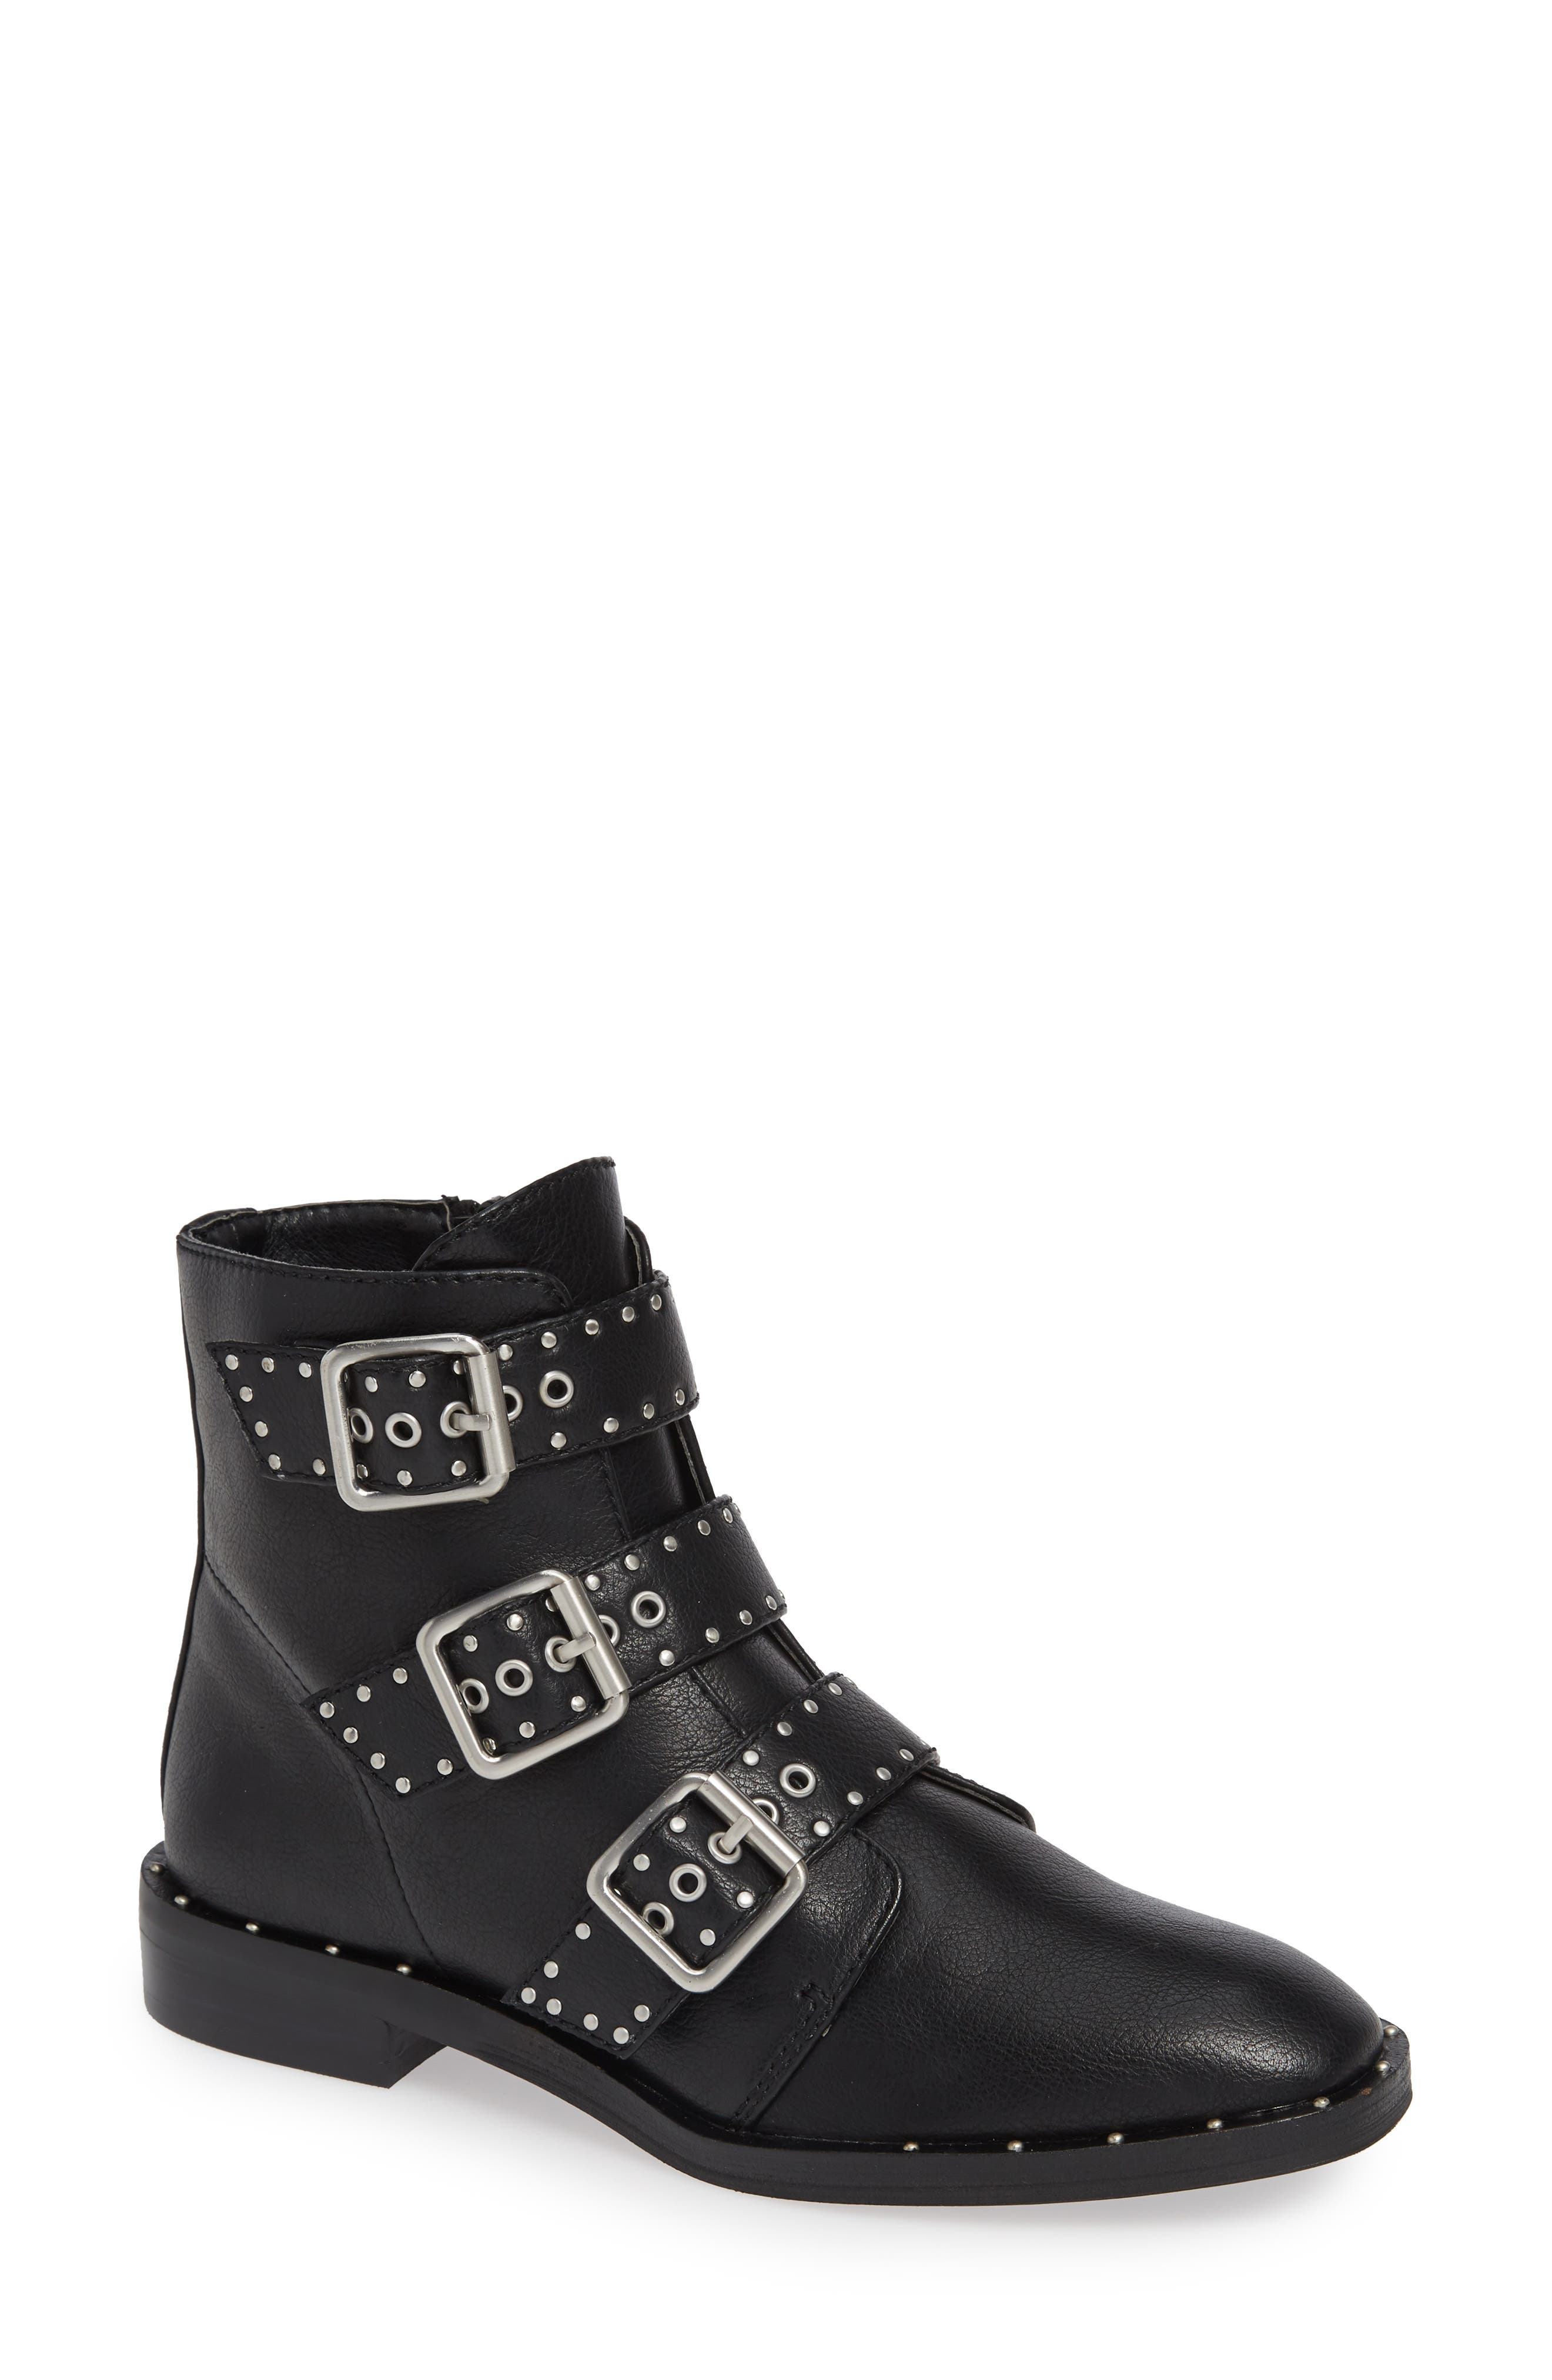 Chinese Laundry Chelsea Boot- Black